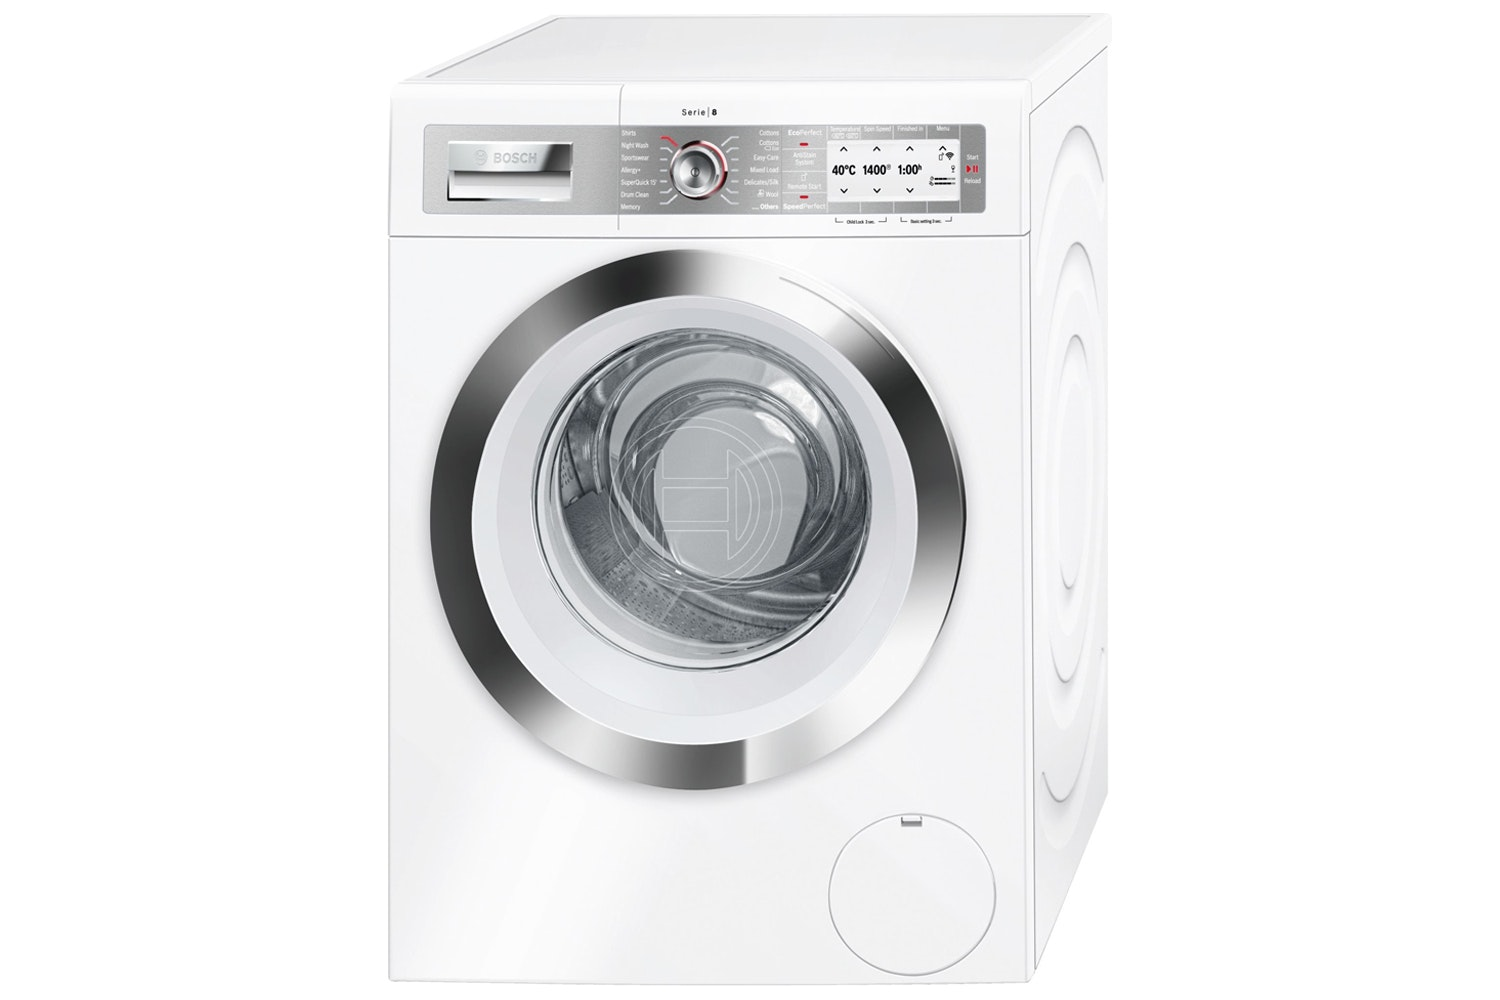 Bosch Series 8 9kg Washing Machine | WAYH8790GB